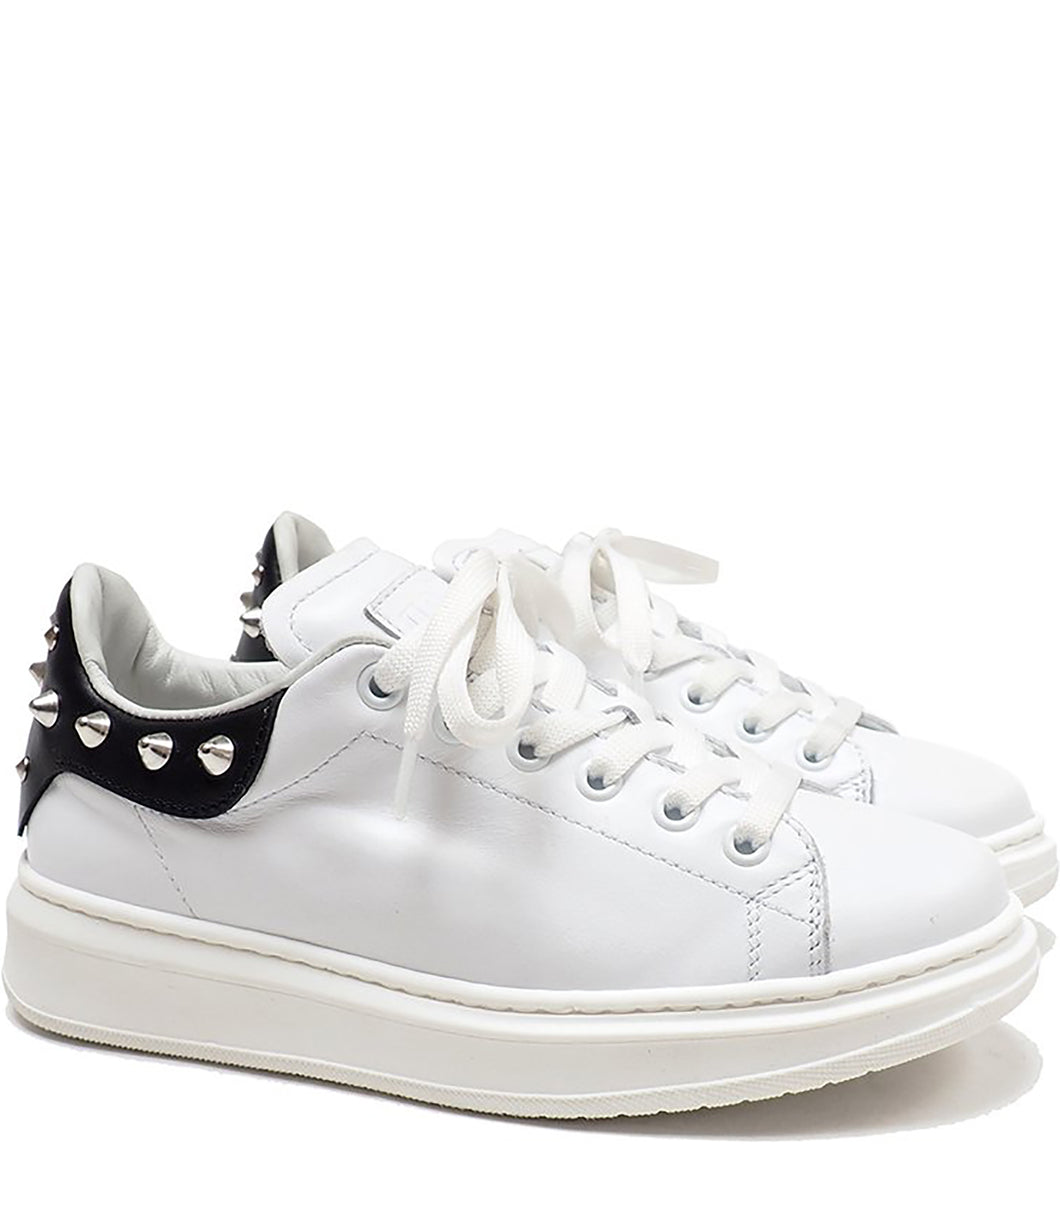 Low-Top Sneakers in Calf Leather with Studs